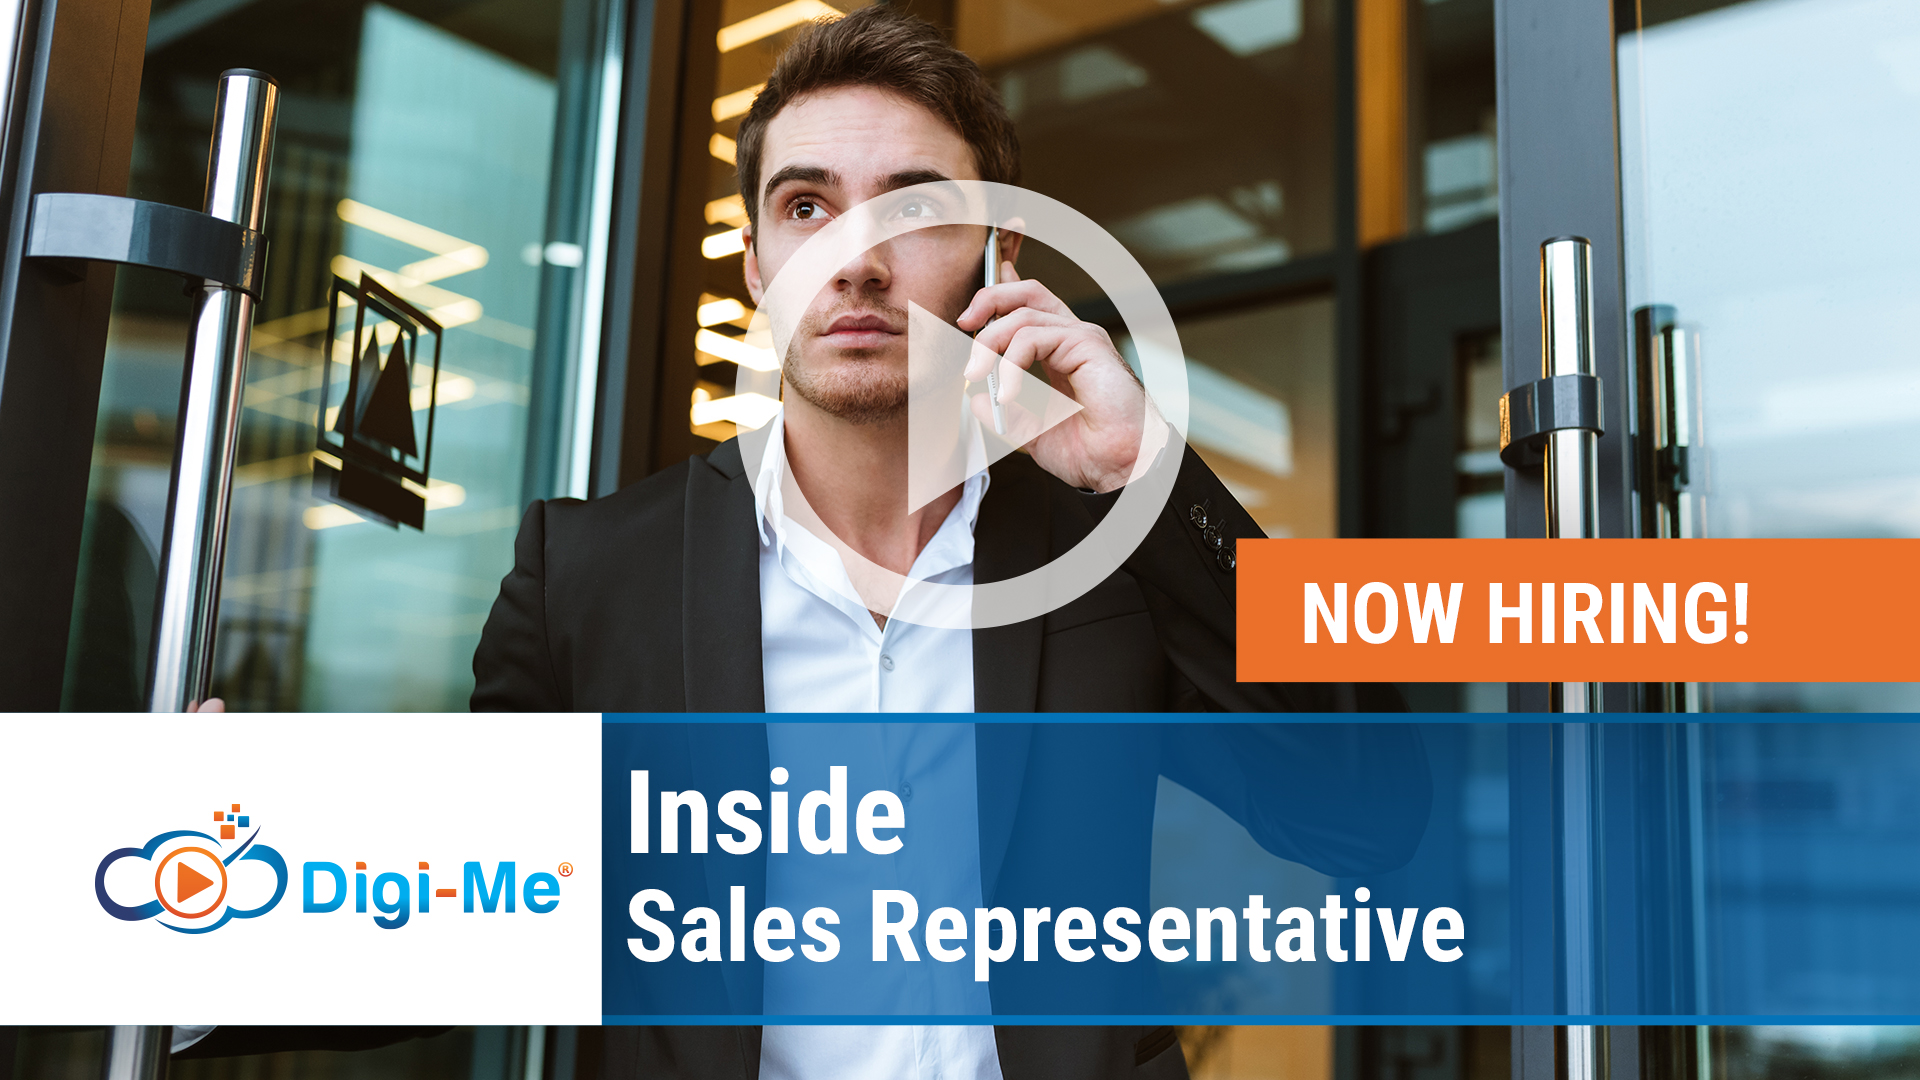 Watch our careers video for available job opening Inside Sales Representative in Naperville,Illinois or Virtua